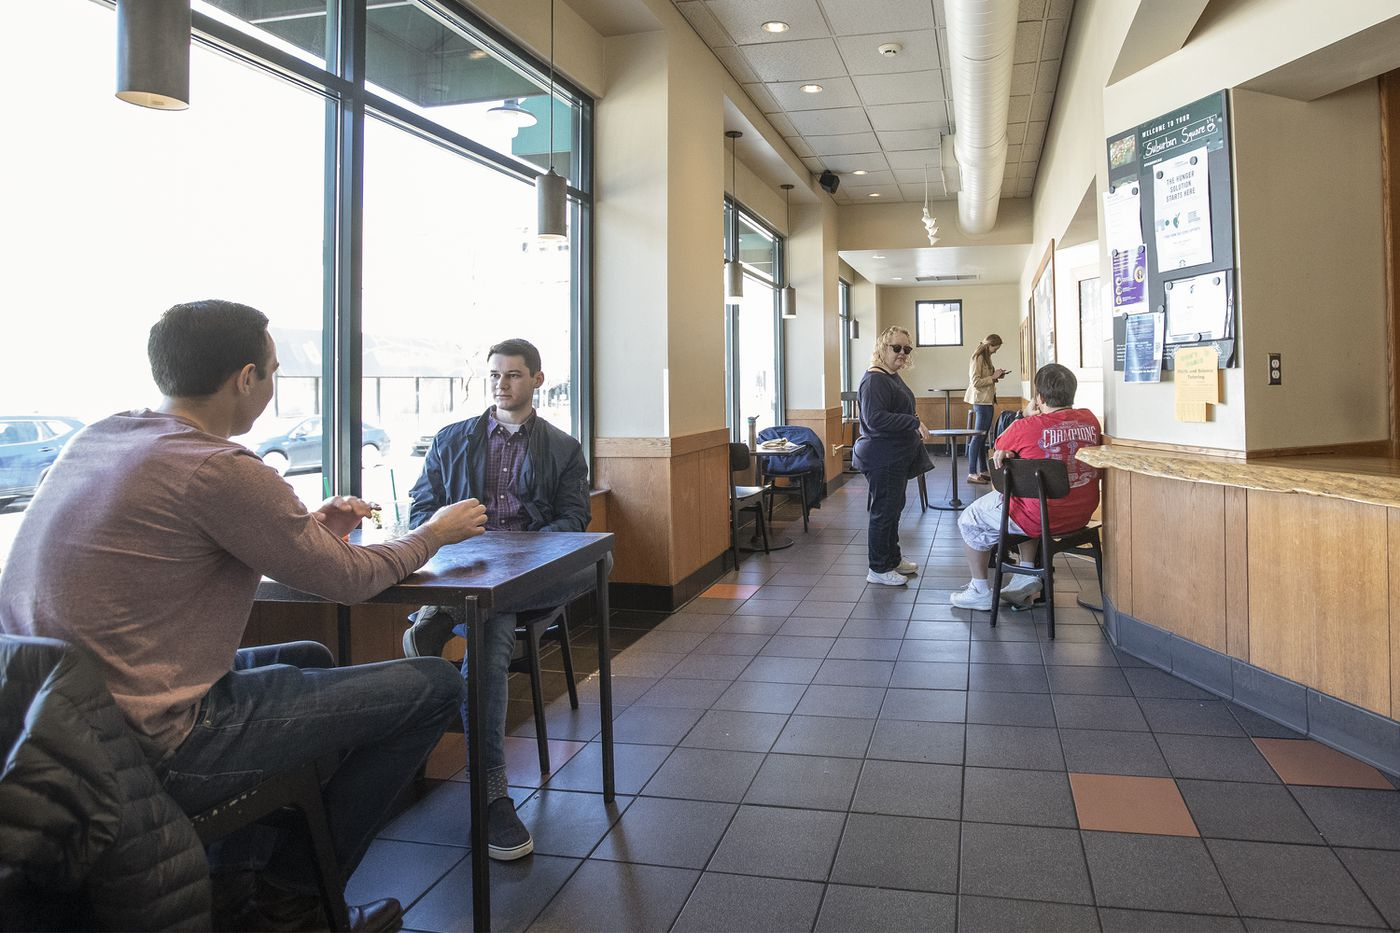 The Starbucks cafe in the Suburban Square shopping center in Montgomery County, Pa, was still open on Sunday, March 15, 2020, but the store had reduced their seating capacity to promote social distancing of six feet or more. The number of places to sit was severely reduced.